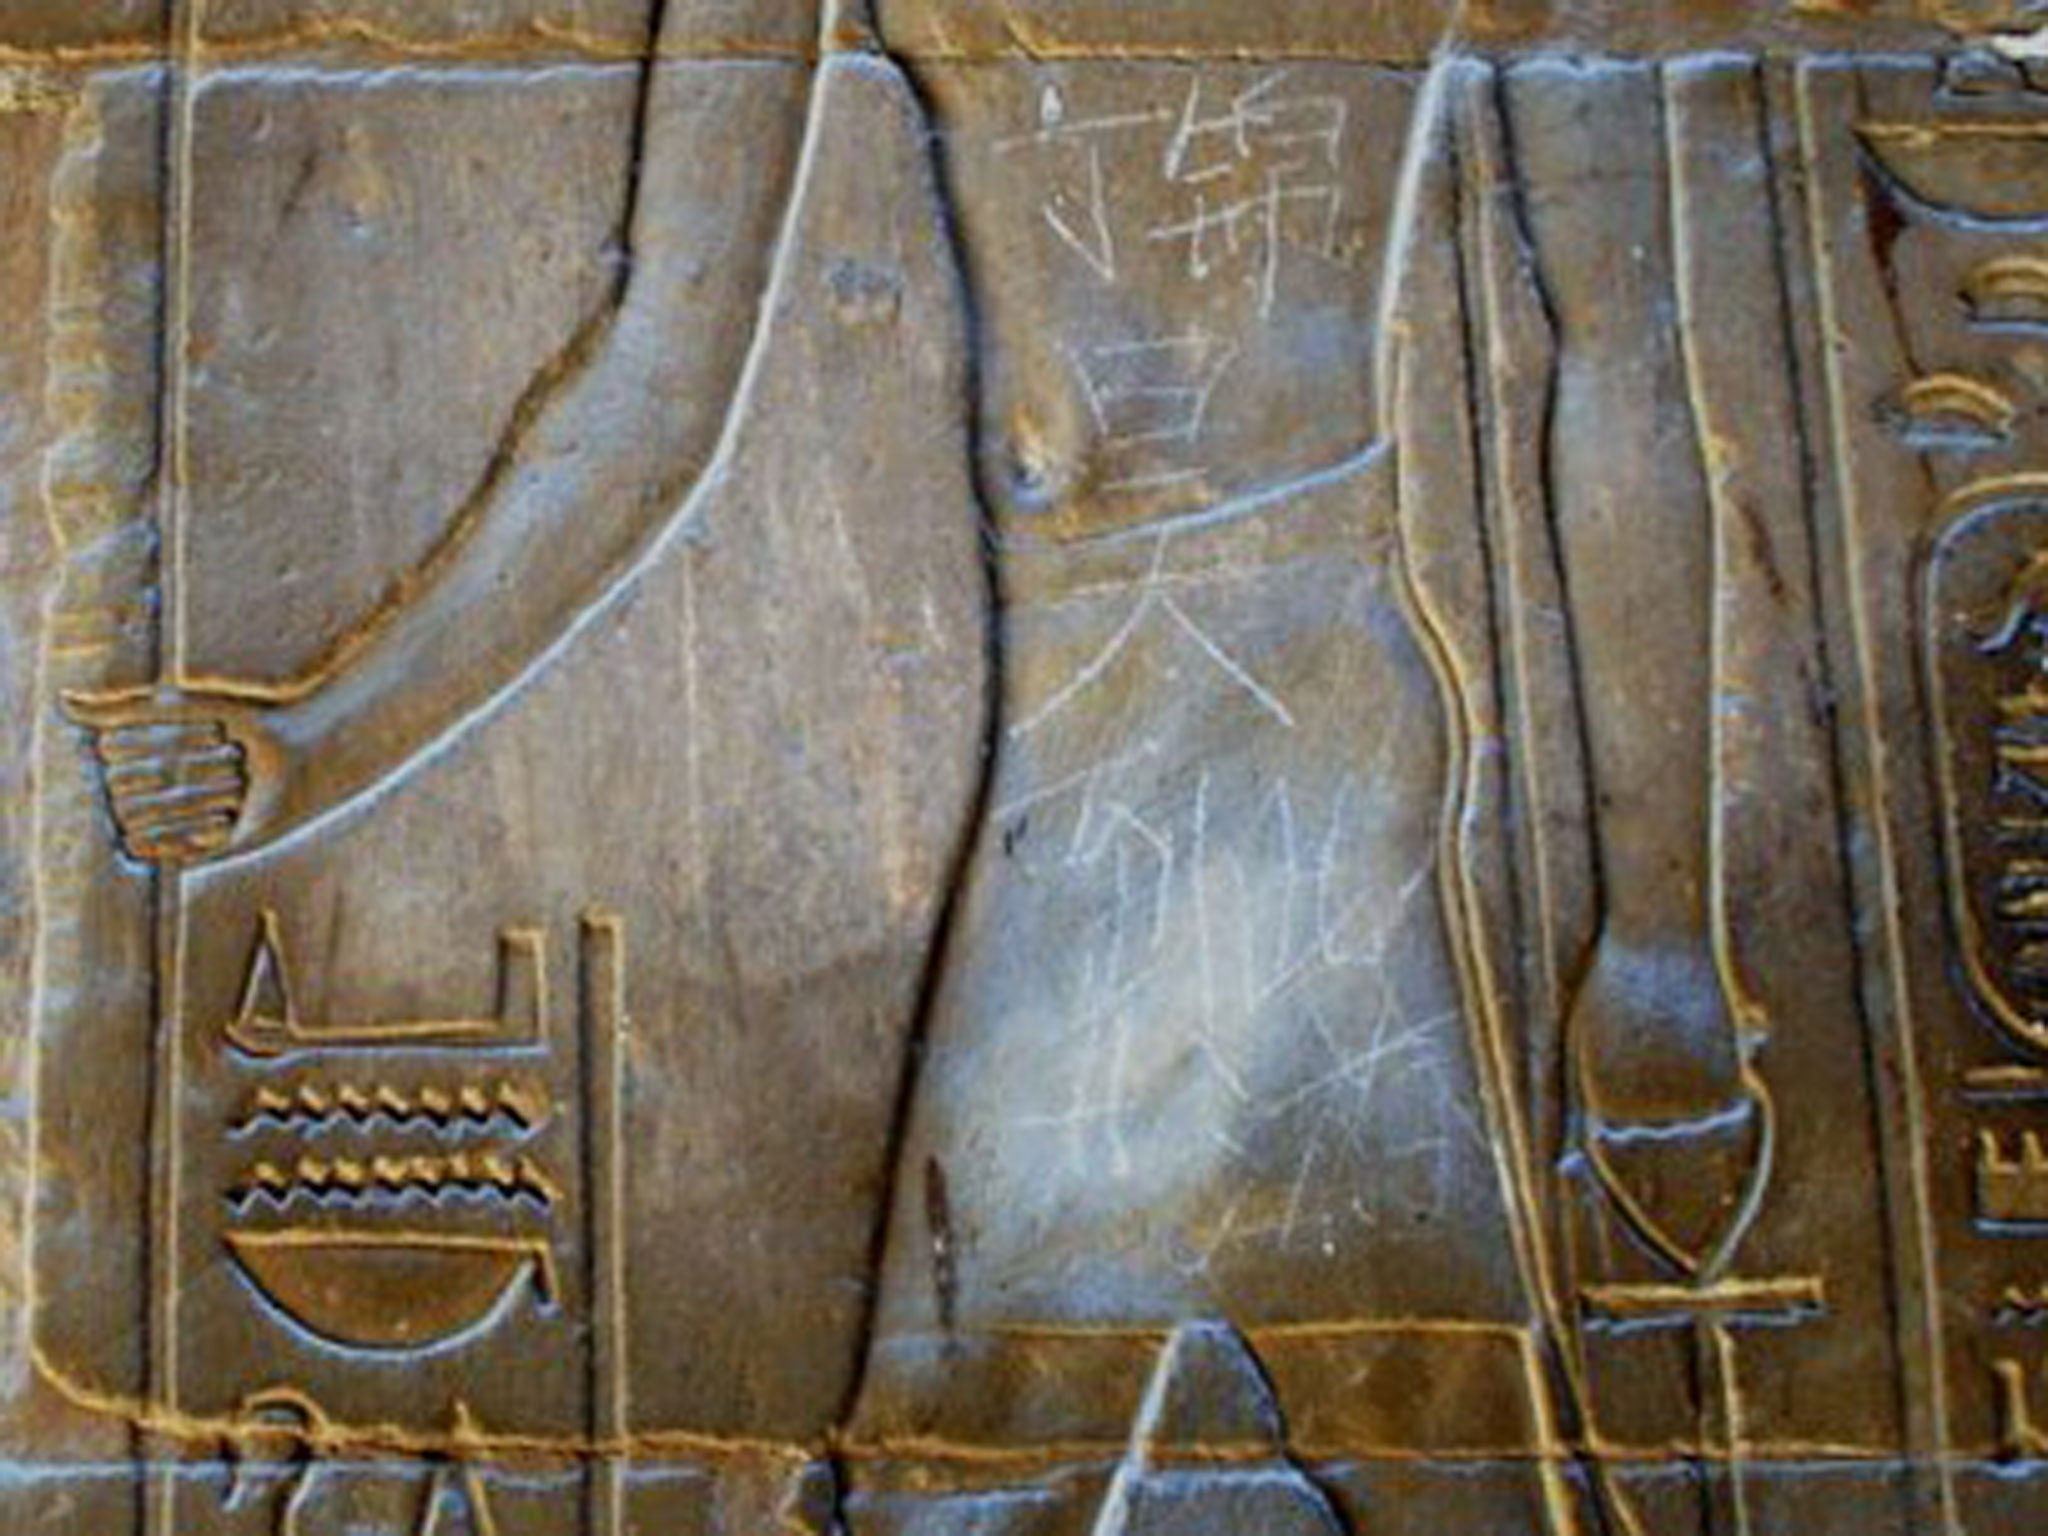 Chinese schoolboy, 15, exposed as Egypt's ancient temple graffiti